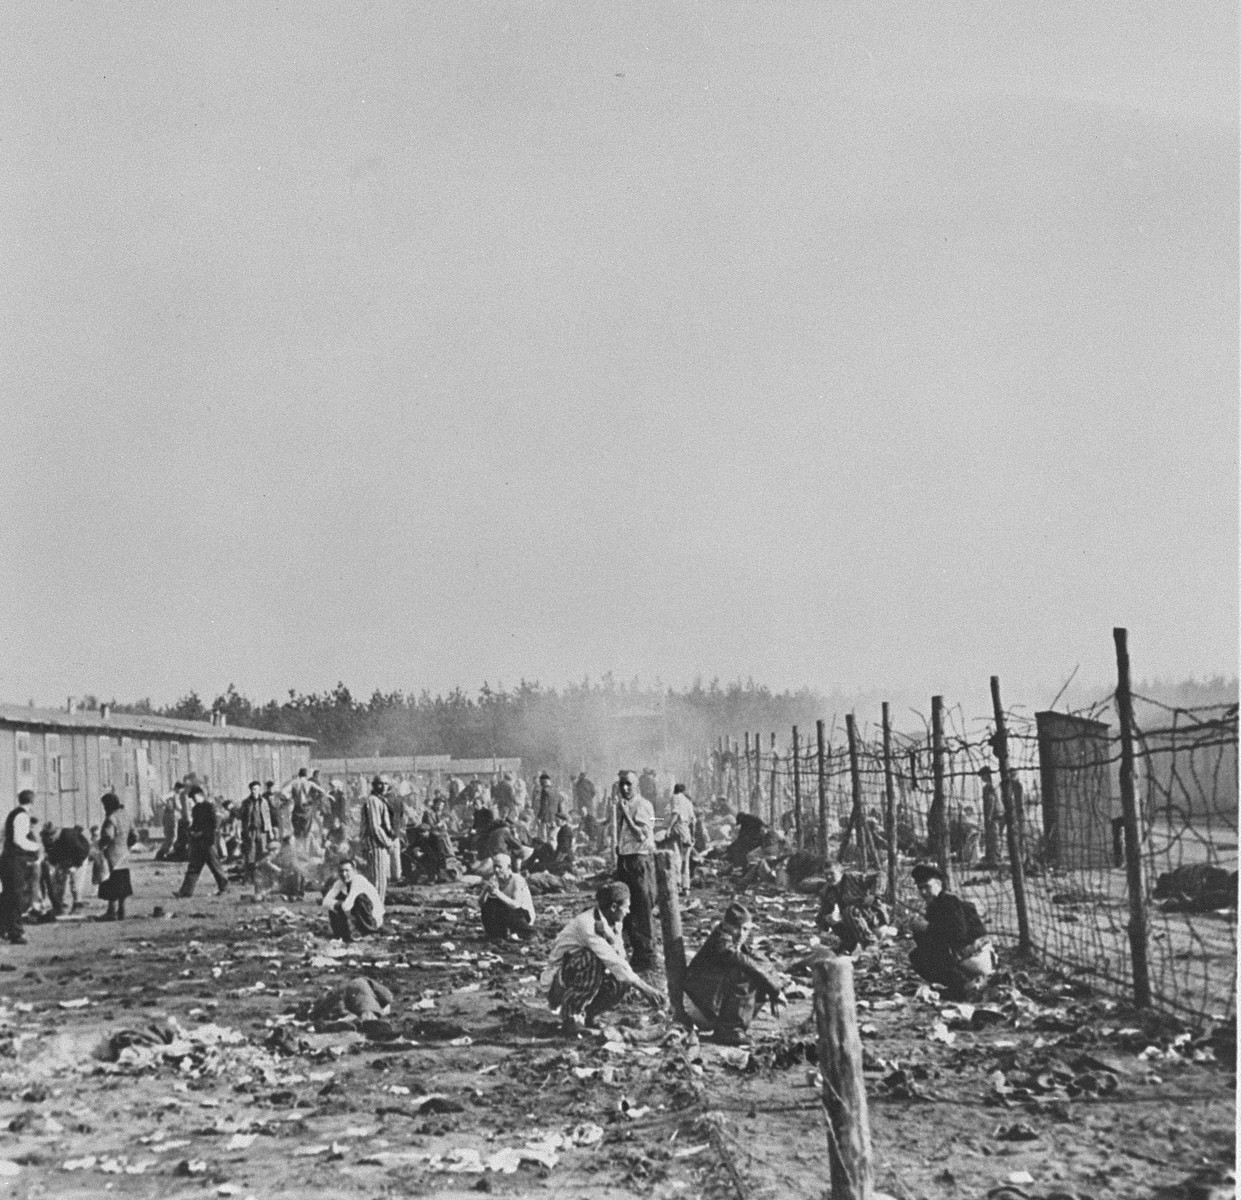 Survivors gather behind a barbed wire fence in Bergen-Belsen.